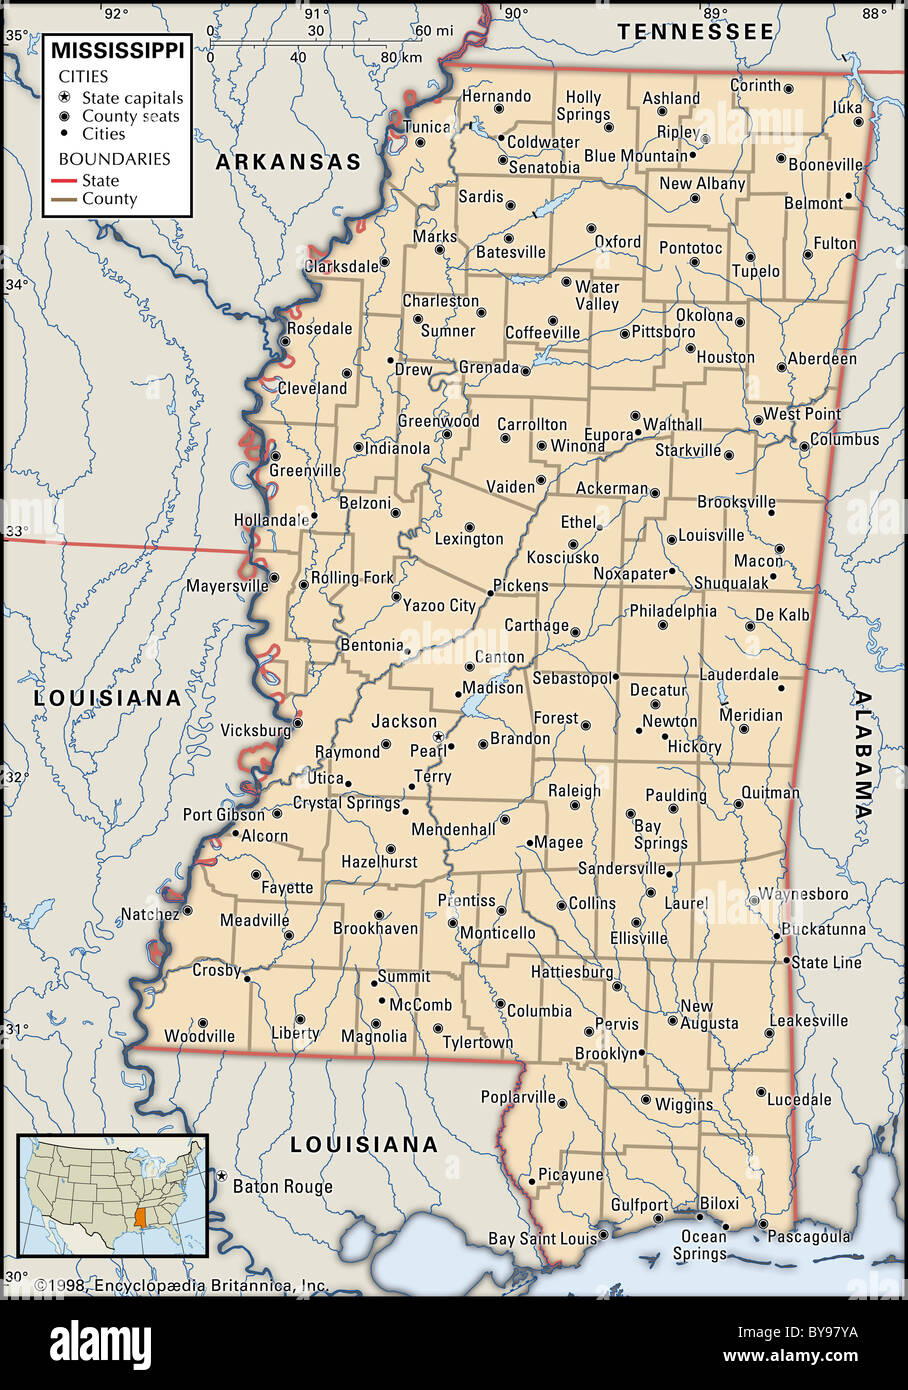 Political Map Of Mississippi Stock Photo 34009902 Alamy